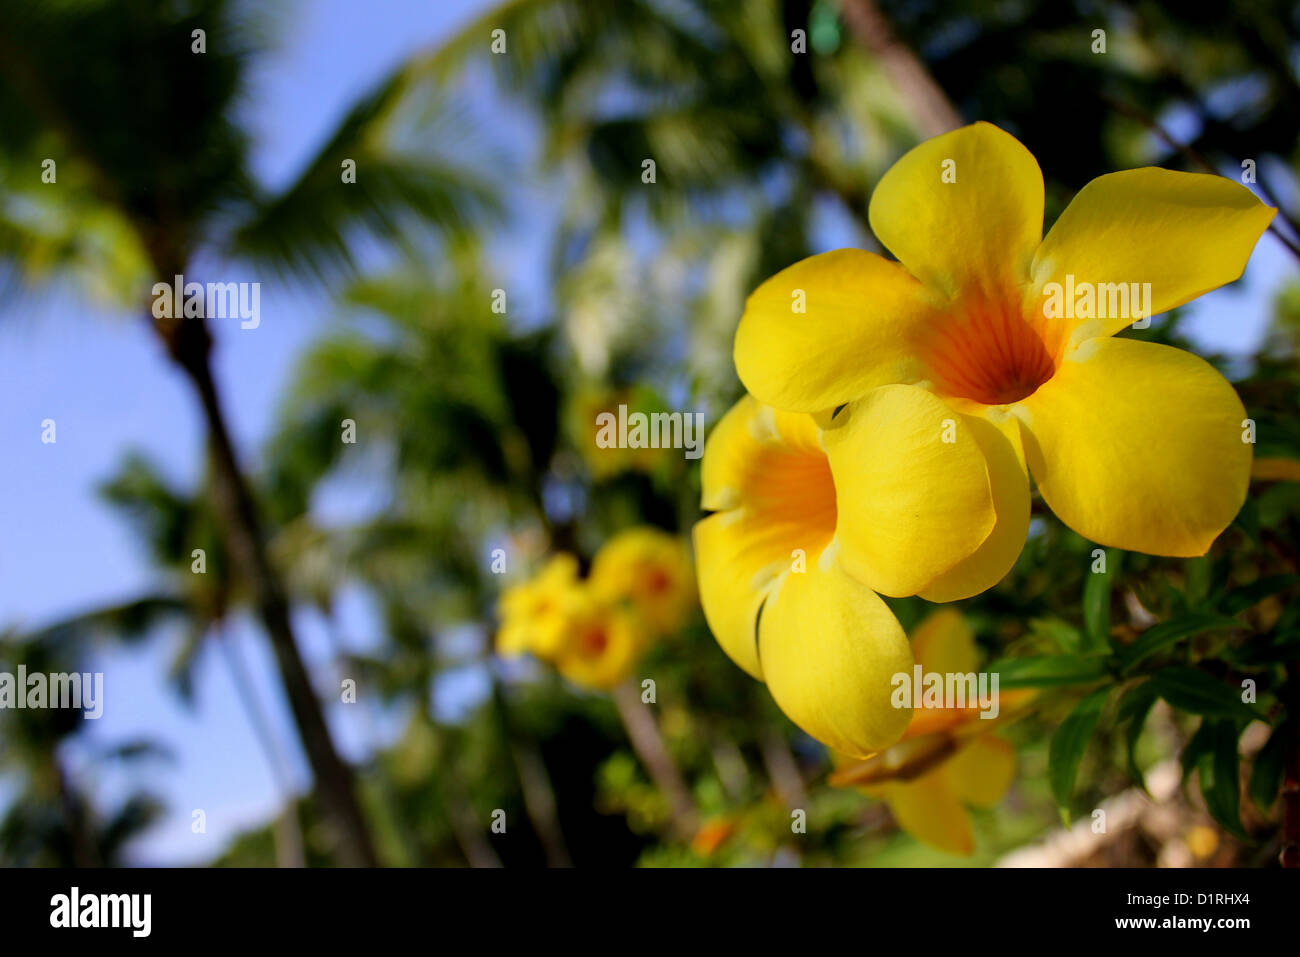 Tropical yellow flowers and palm trees with a blue sky background in tropical yellow flowers and palm trees with a blue sky background in cebu philippines mightylinksfo